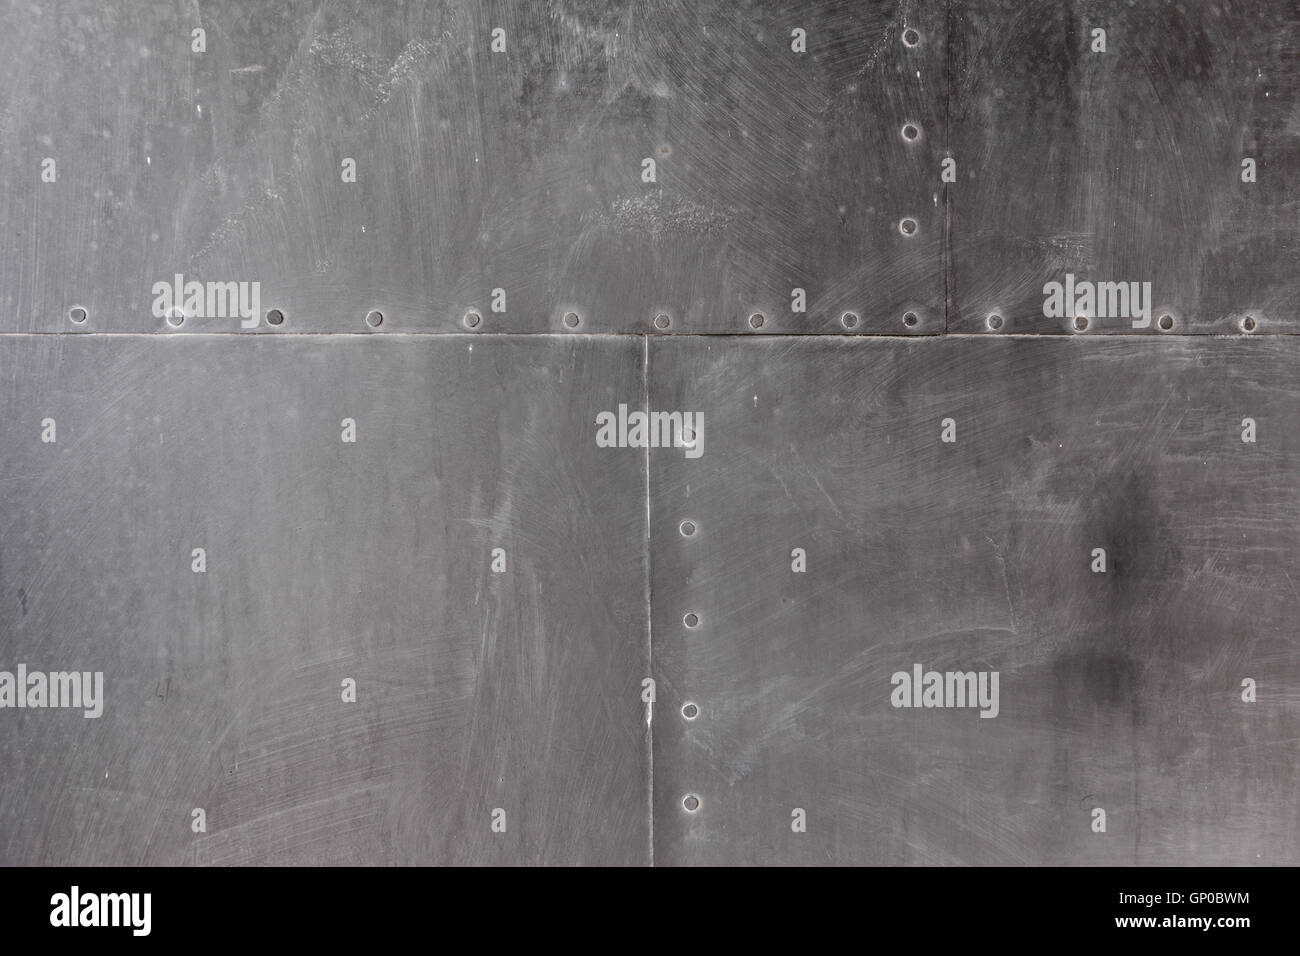 Metal plate steel background or texture - Stock Image